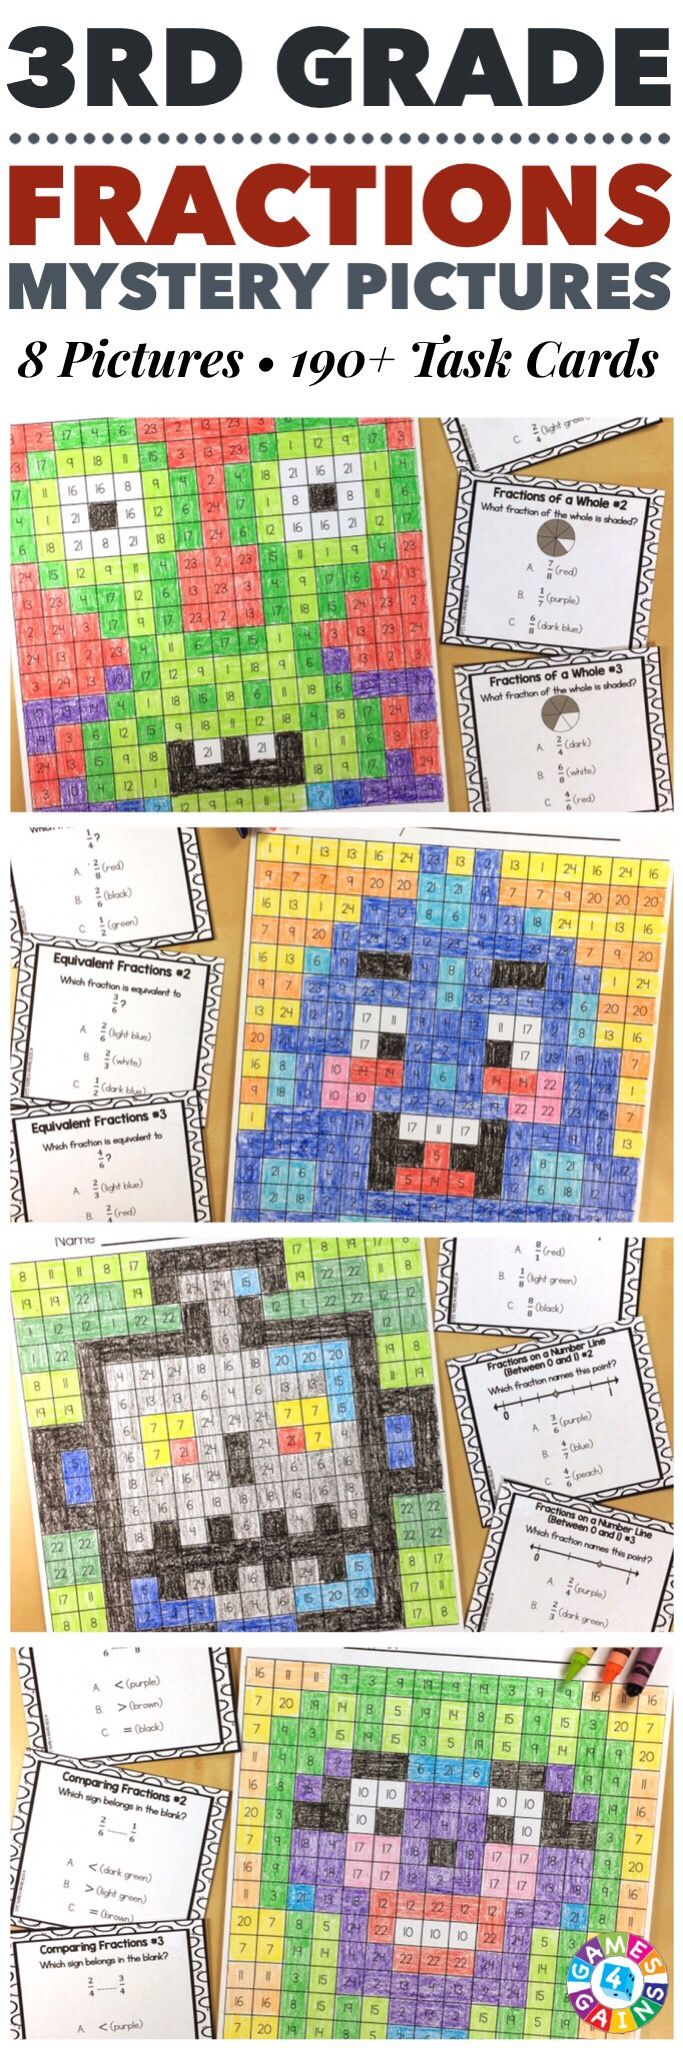 """""""I LOVE these mystery pictures for reinforcing concepts!"""" These 3rd Grade Fractions Mystery Pictures are perfect for practicing key 3rd grade Common Core fractions standards. This set includes 8 different pictures and over 190 task cards covering fractions of a whole, fractions of a group, fractions greater than 1, fractions on a number line, equivalent fractions, and comparing fractions!"""